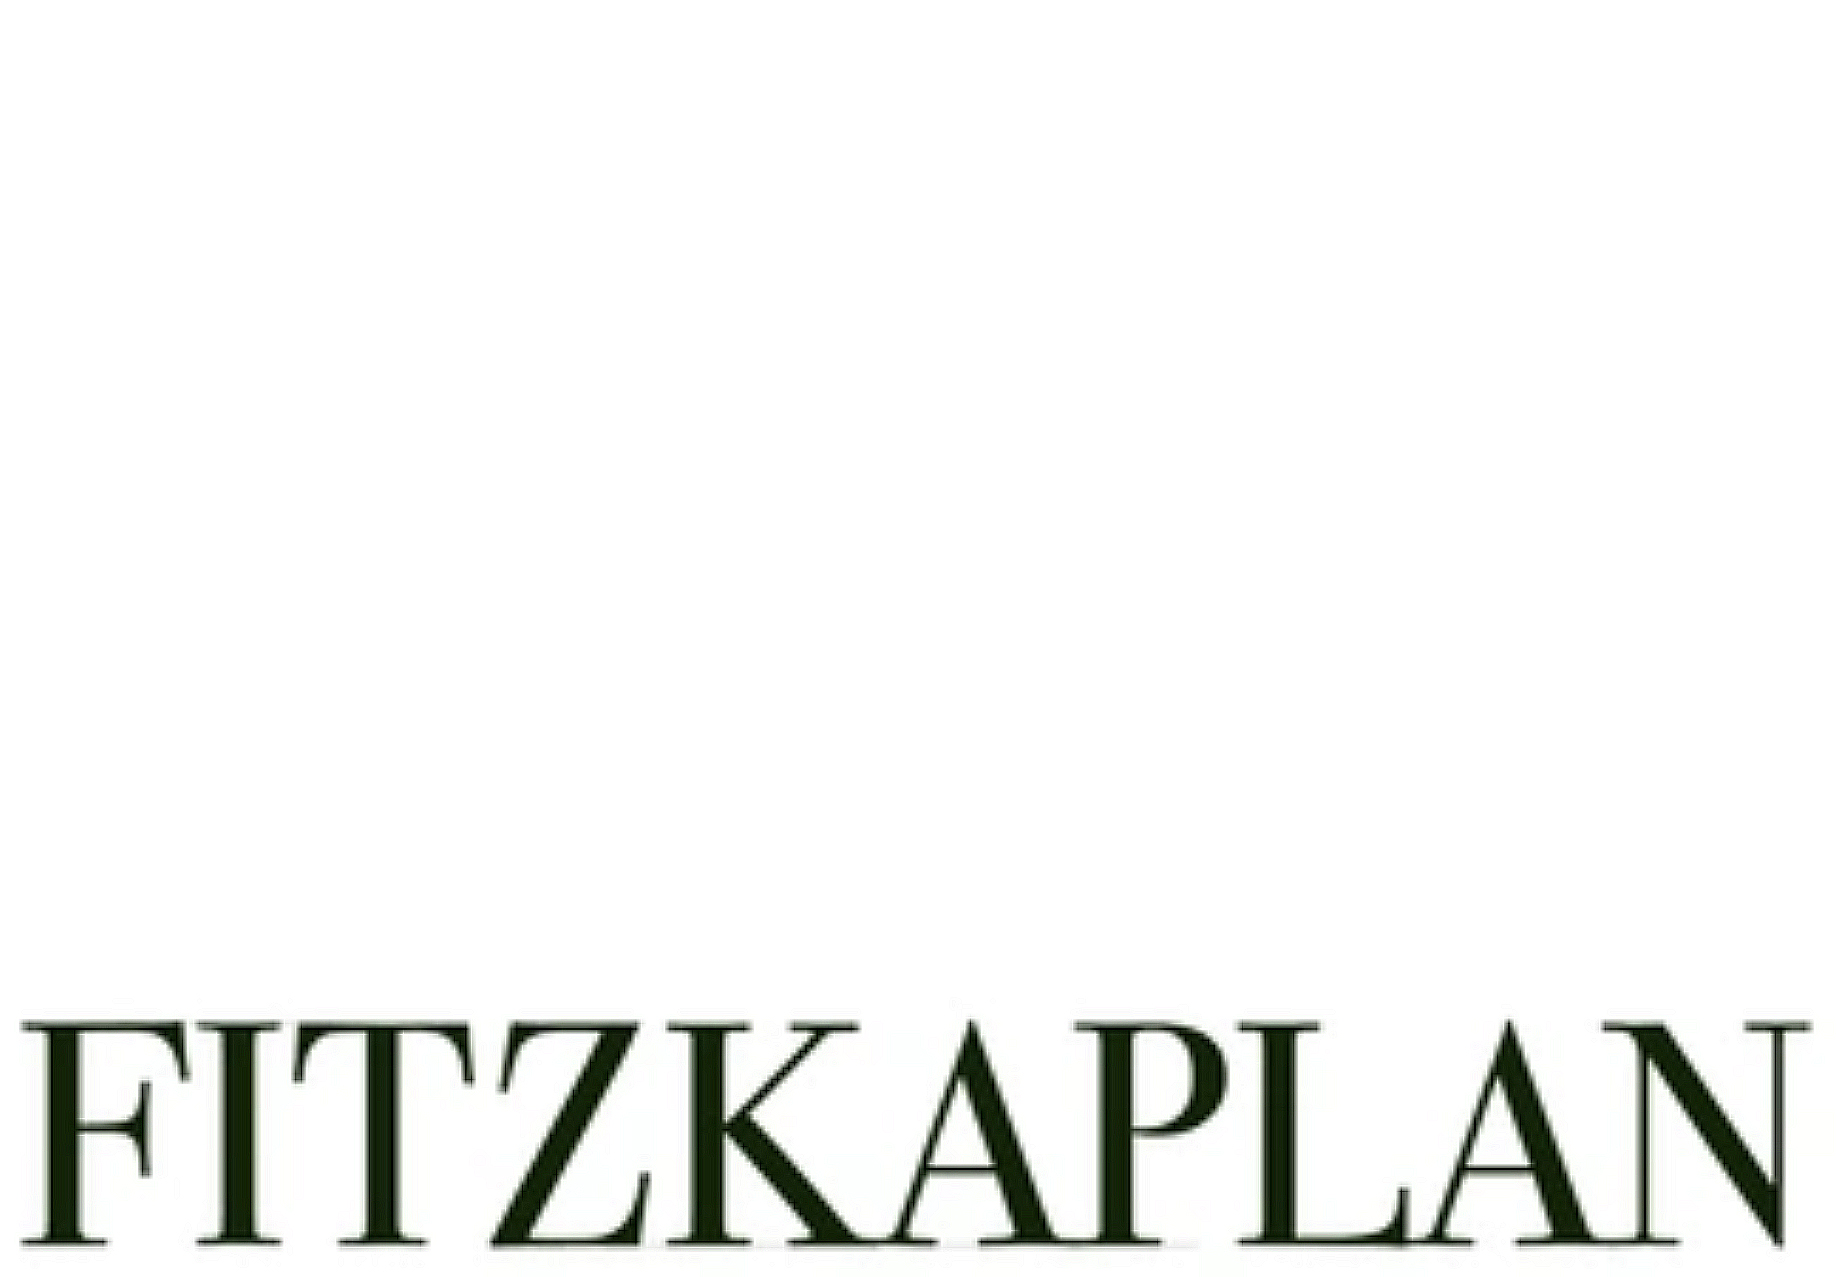 Fitzkaplan Inc. - Fitzkaplan was established in 1987 by Diane Fitzgerald. With a background in Art History, Fine Arts and Objects conservation, extensive work experience and classical training at the venerable firm of Thorp Brothers, Fitzkaplan is known as a specialty restoration and replication company. Executing and restoring period finishes on antique and custom furniture and fine art objects are expertly accomplished. The small firm works on large architectural woodwork projects creating shellac and wax finishes, period painted finishes, gilding, antique and contemporary lacquer work, Japanning, Chinoiserie, French polishing, hand silvered mirrored glass, eglomise, and plaster and gesso work, along with many other unique finishes. We specialize in the use and manipulation of traditional materials, old techniques and formulas in proper and contemporary ways.